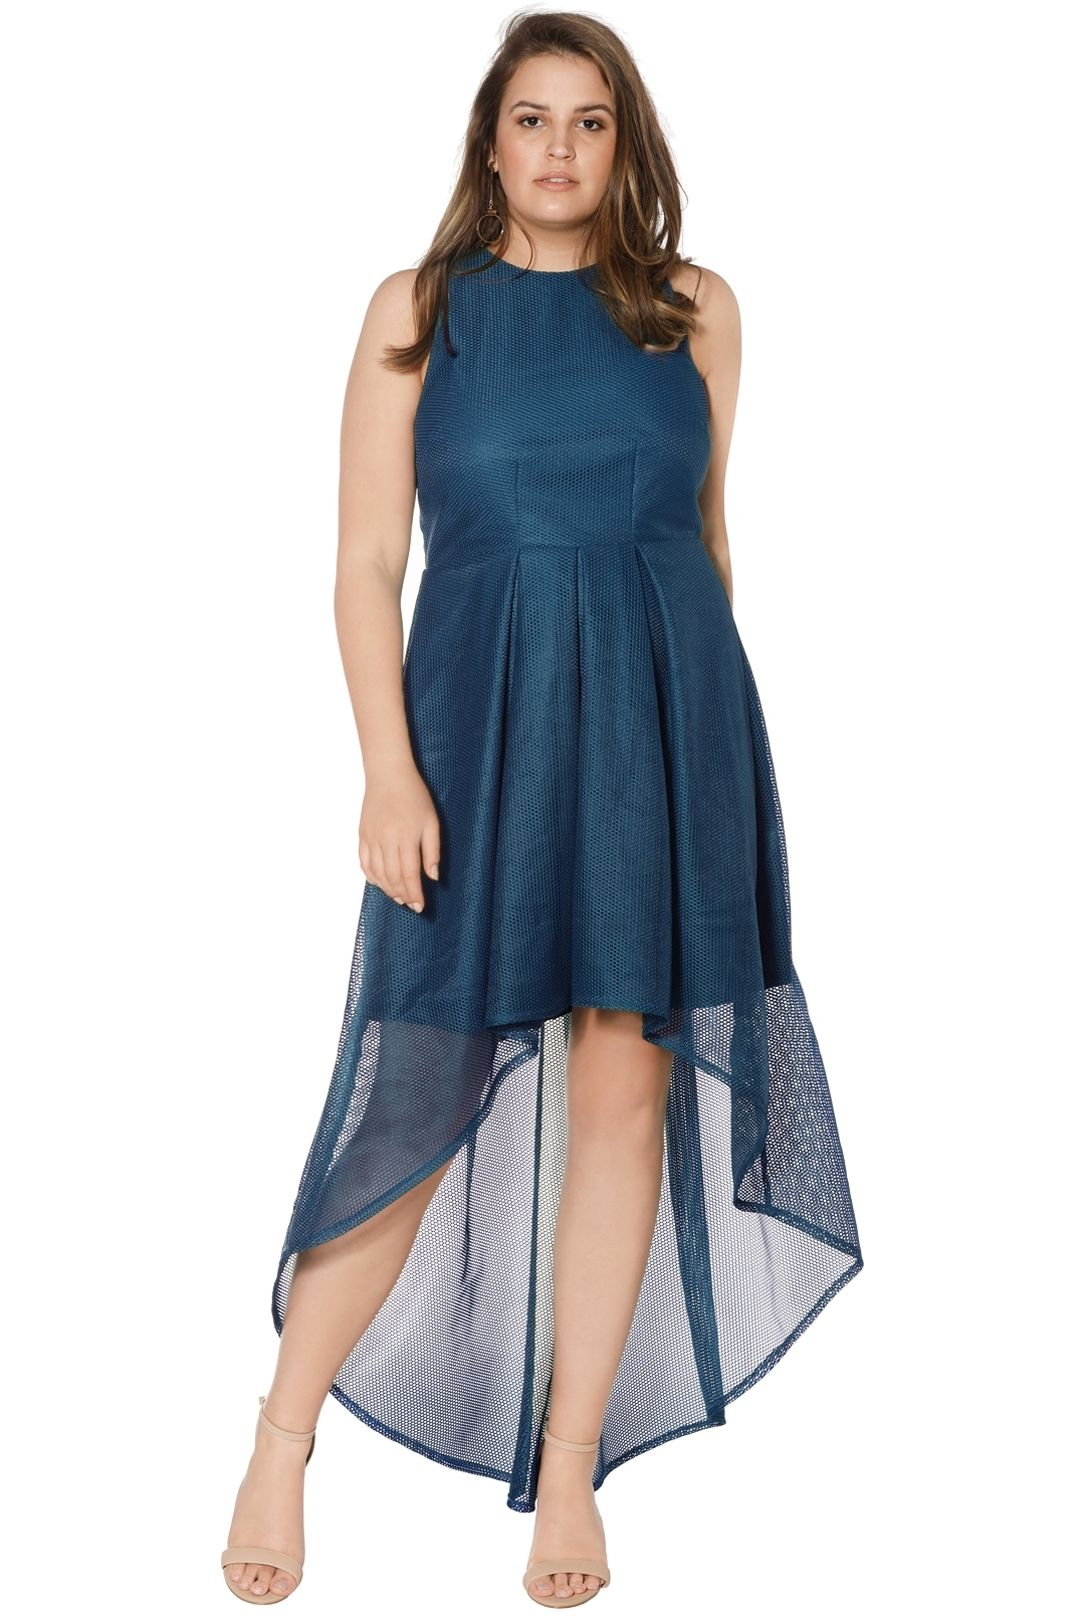 Grace and Hart - Stand Alone Midi - Teal - Front